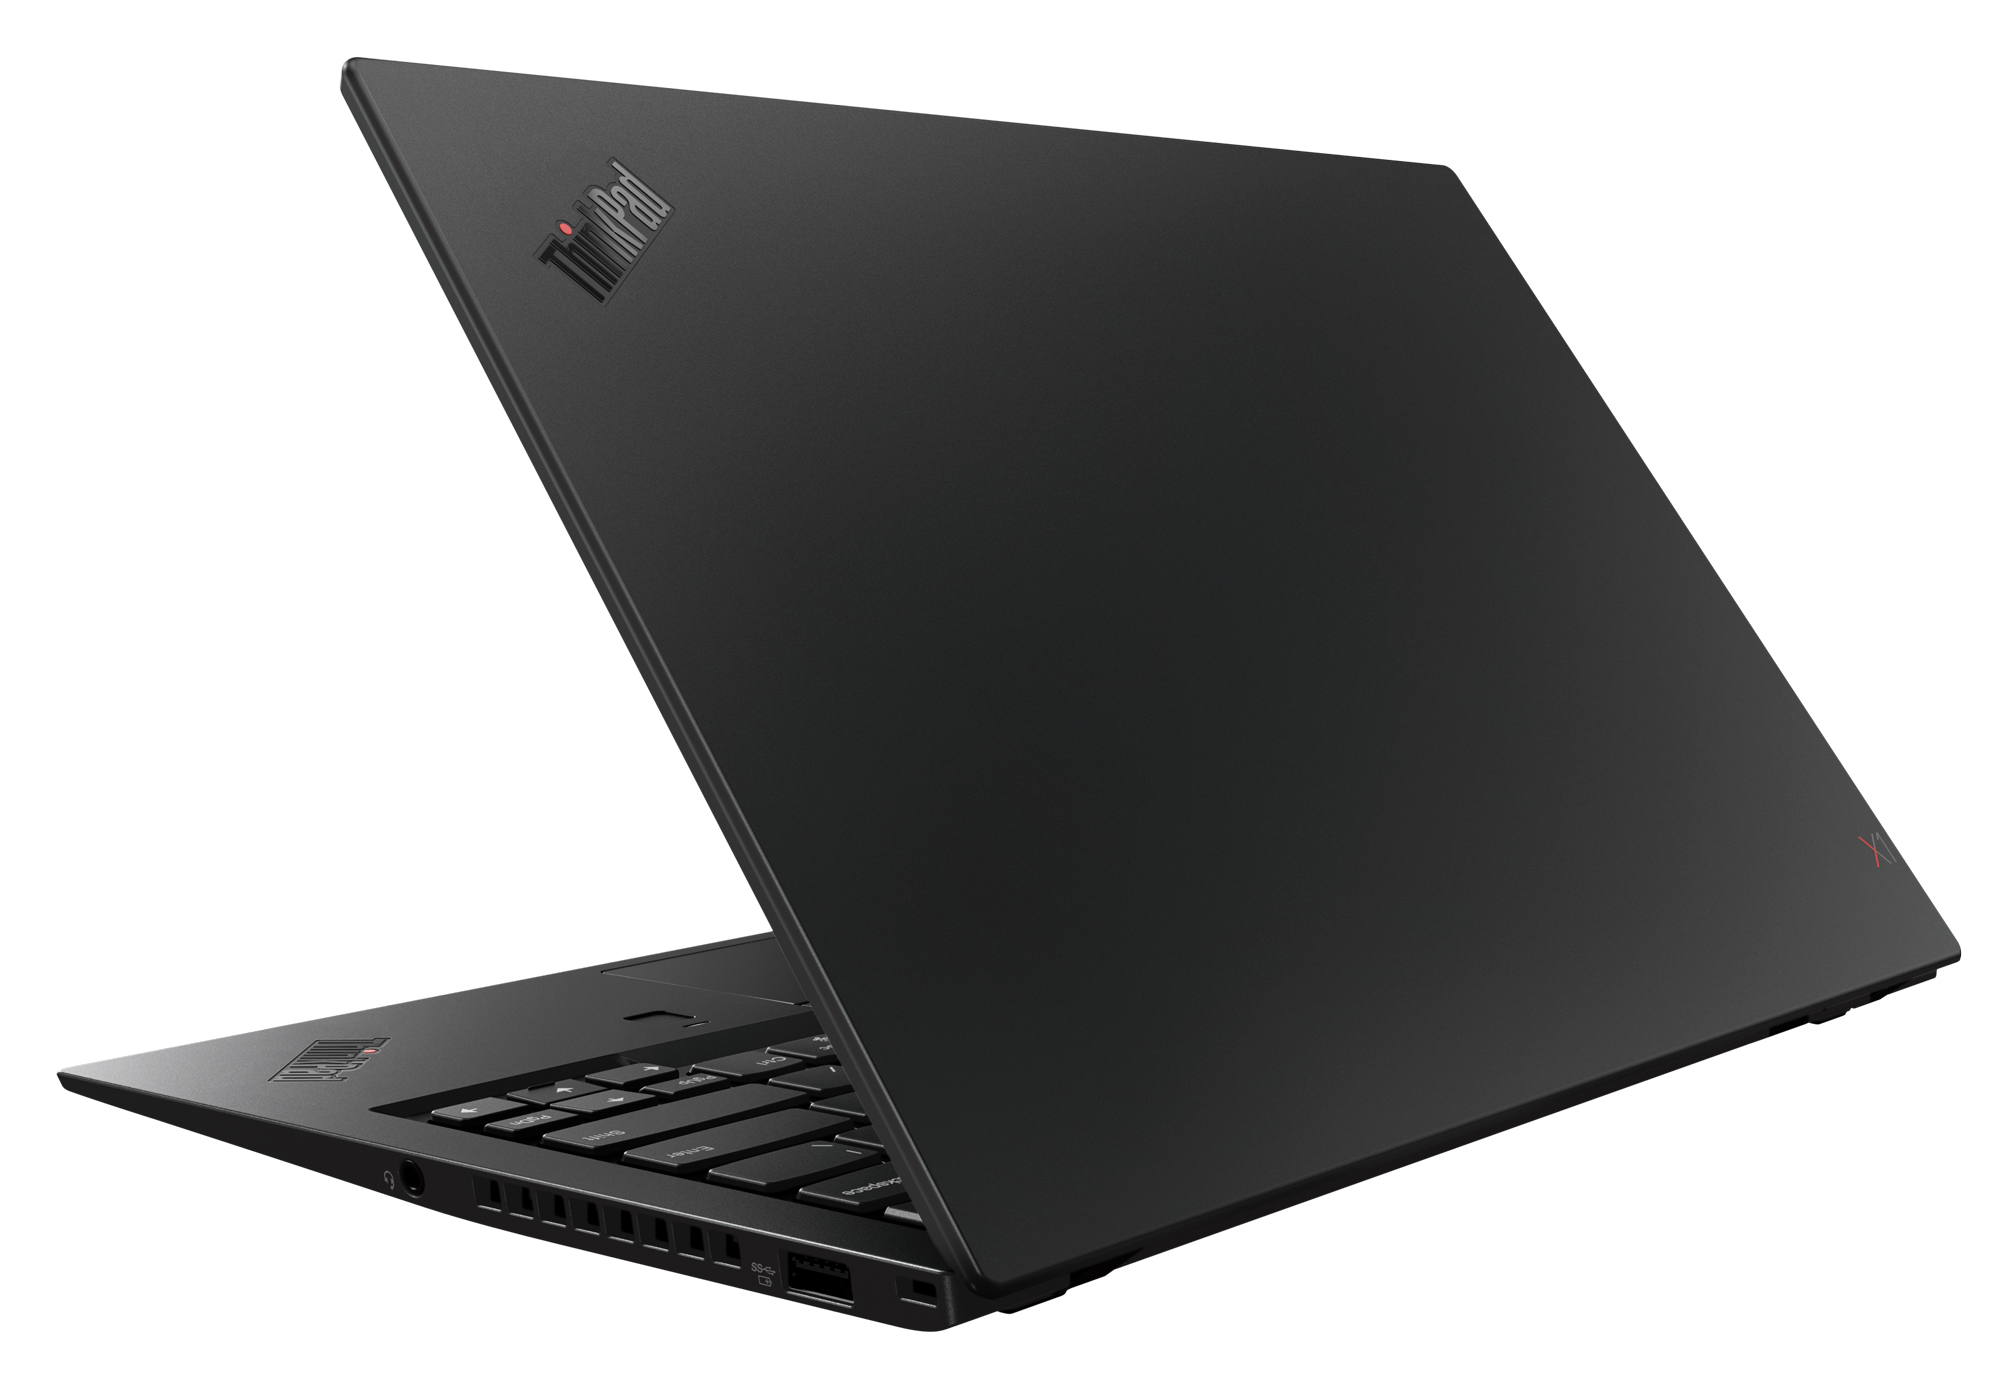 Фото  Ультрабук ThinkPad X1 Carbon 6th Gen (20KH006KRT)